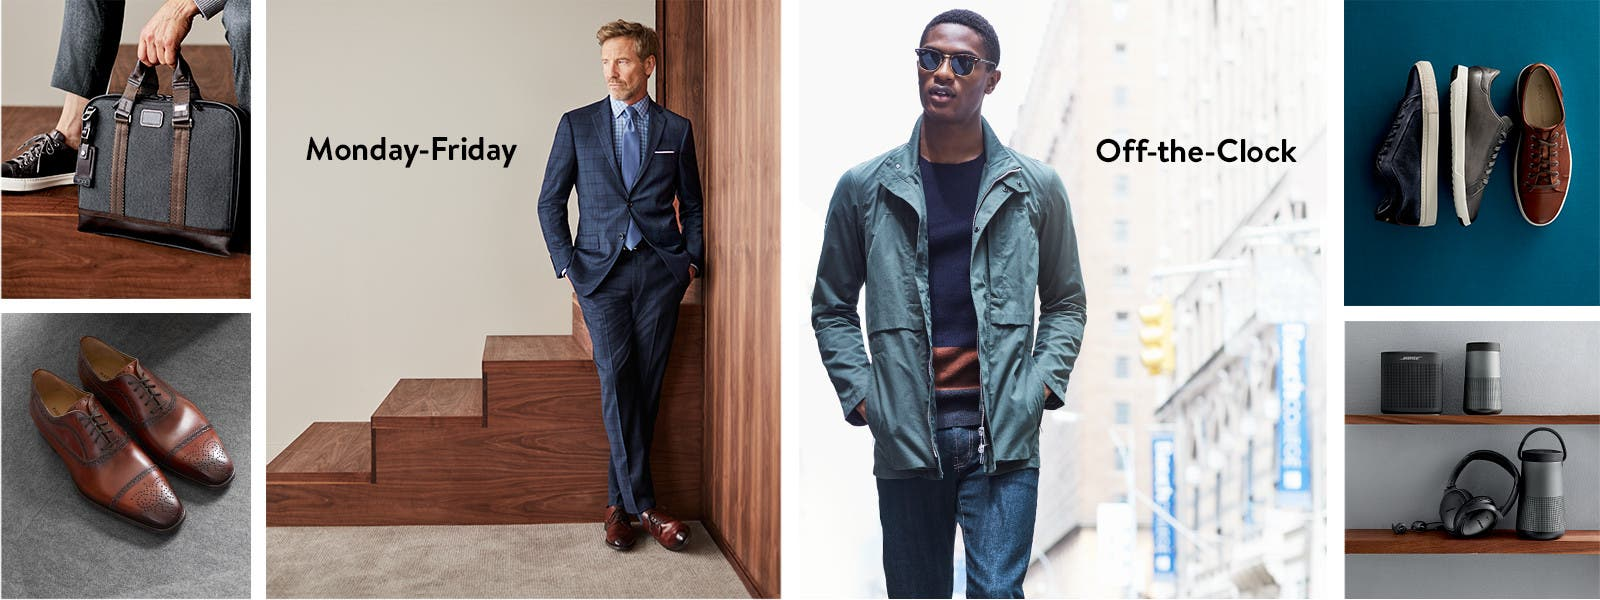 Men's suiting and separates for the work week, plus casual off-the-clock attire.